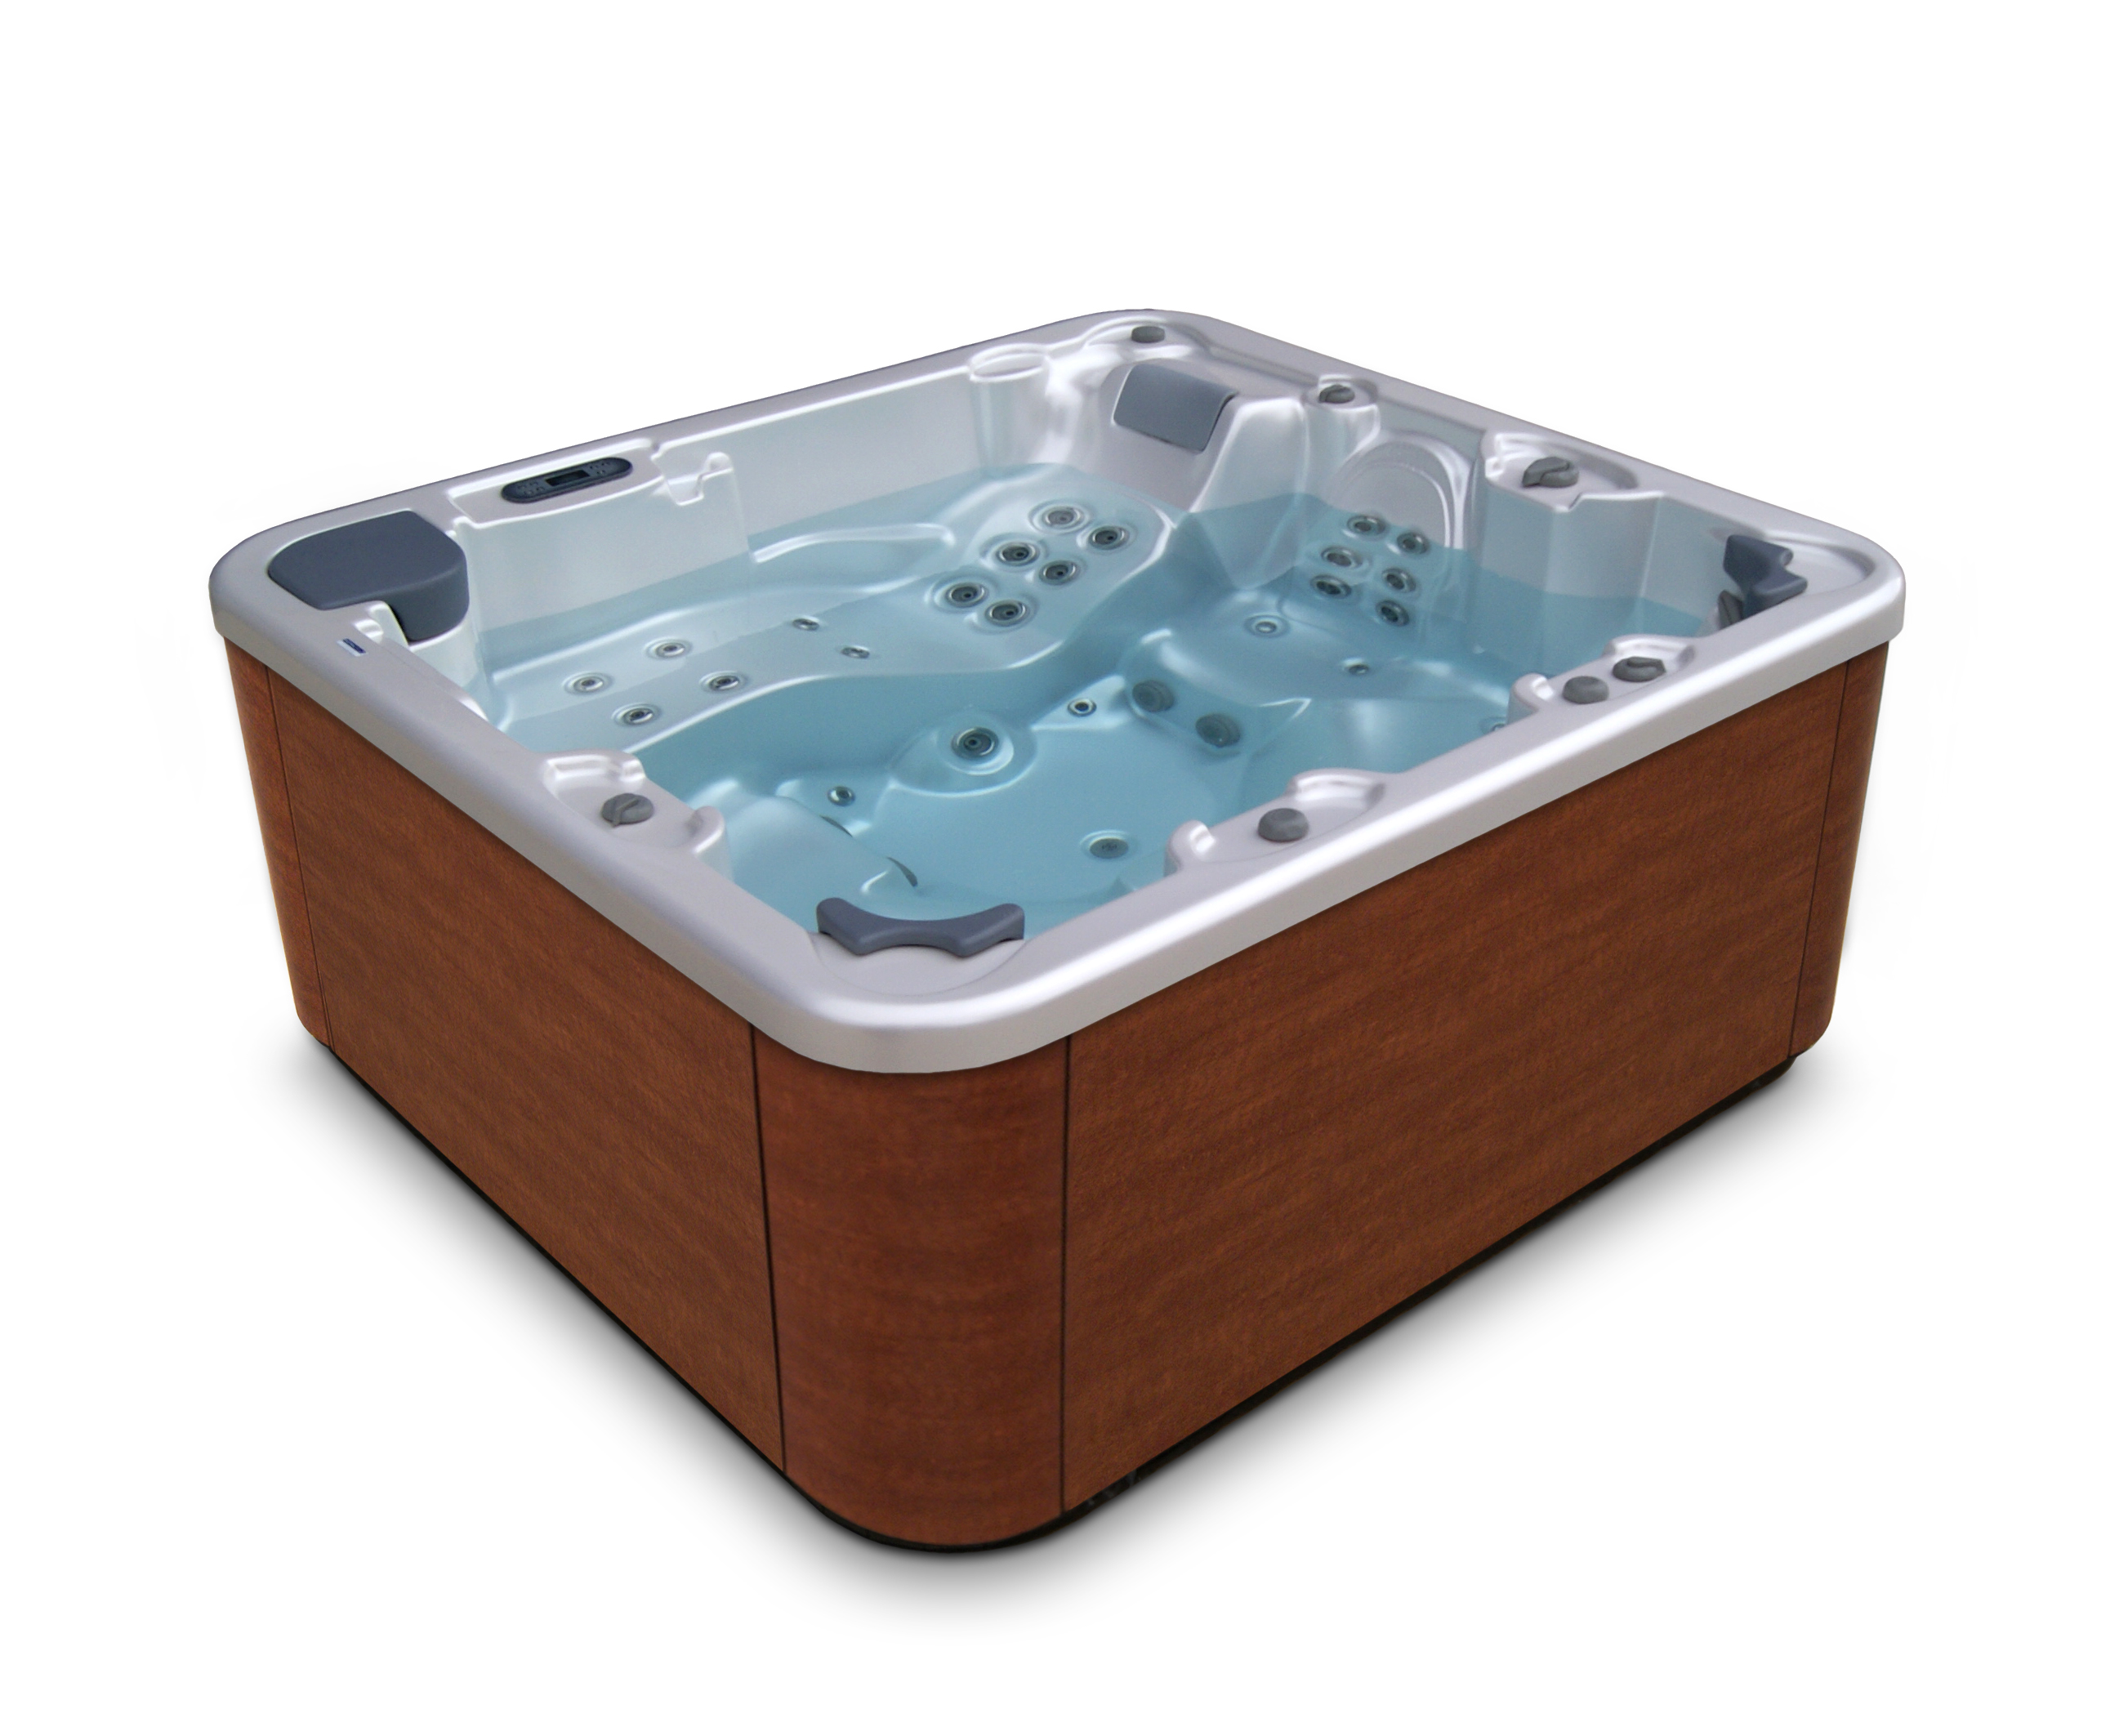 Solarplane Pool Nutzen Aufstell Whirlpool Pacific 50 Sunday Pools Onlineshop